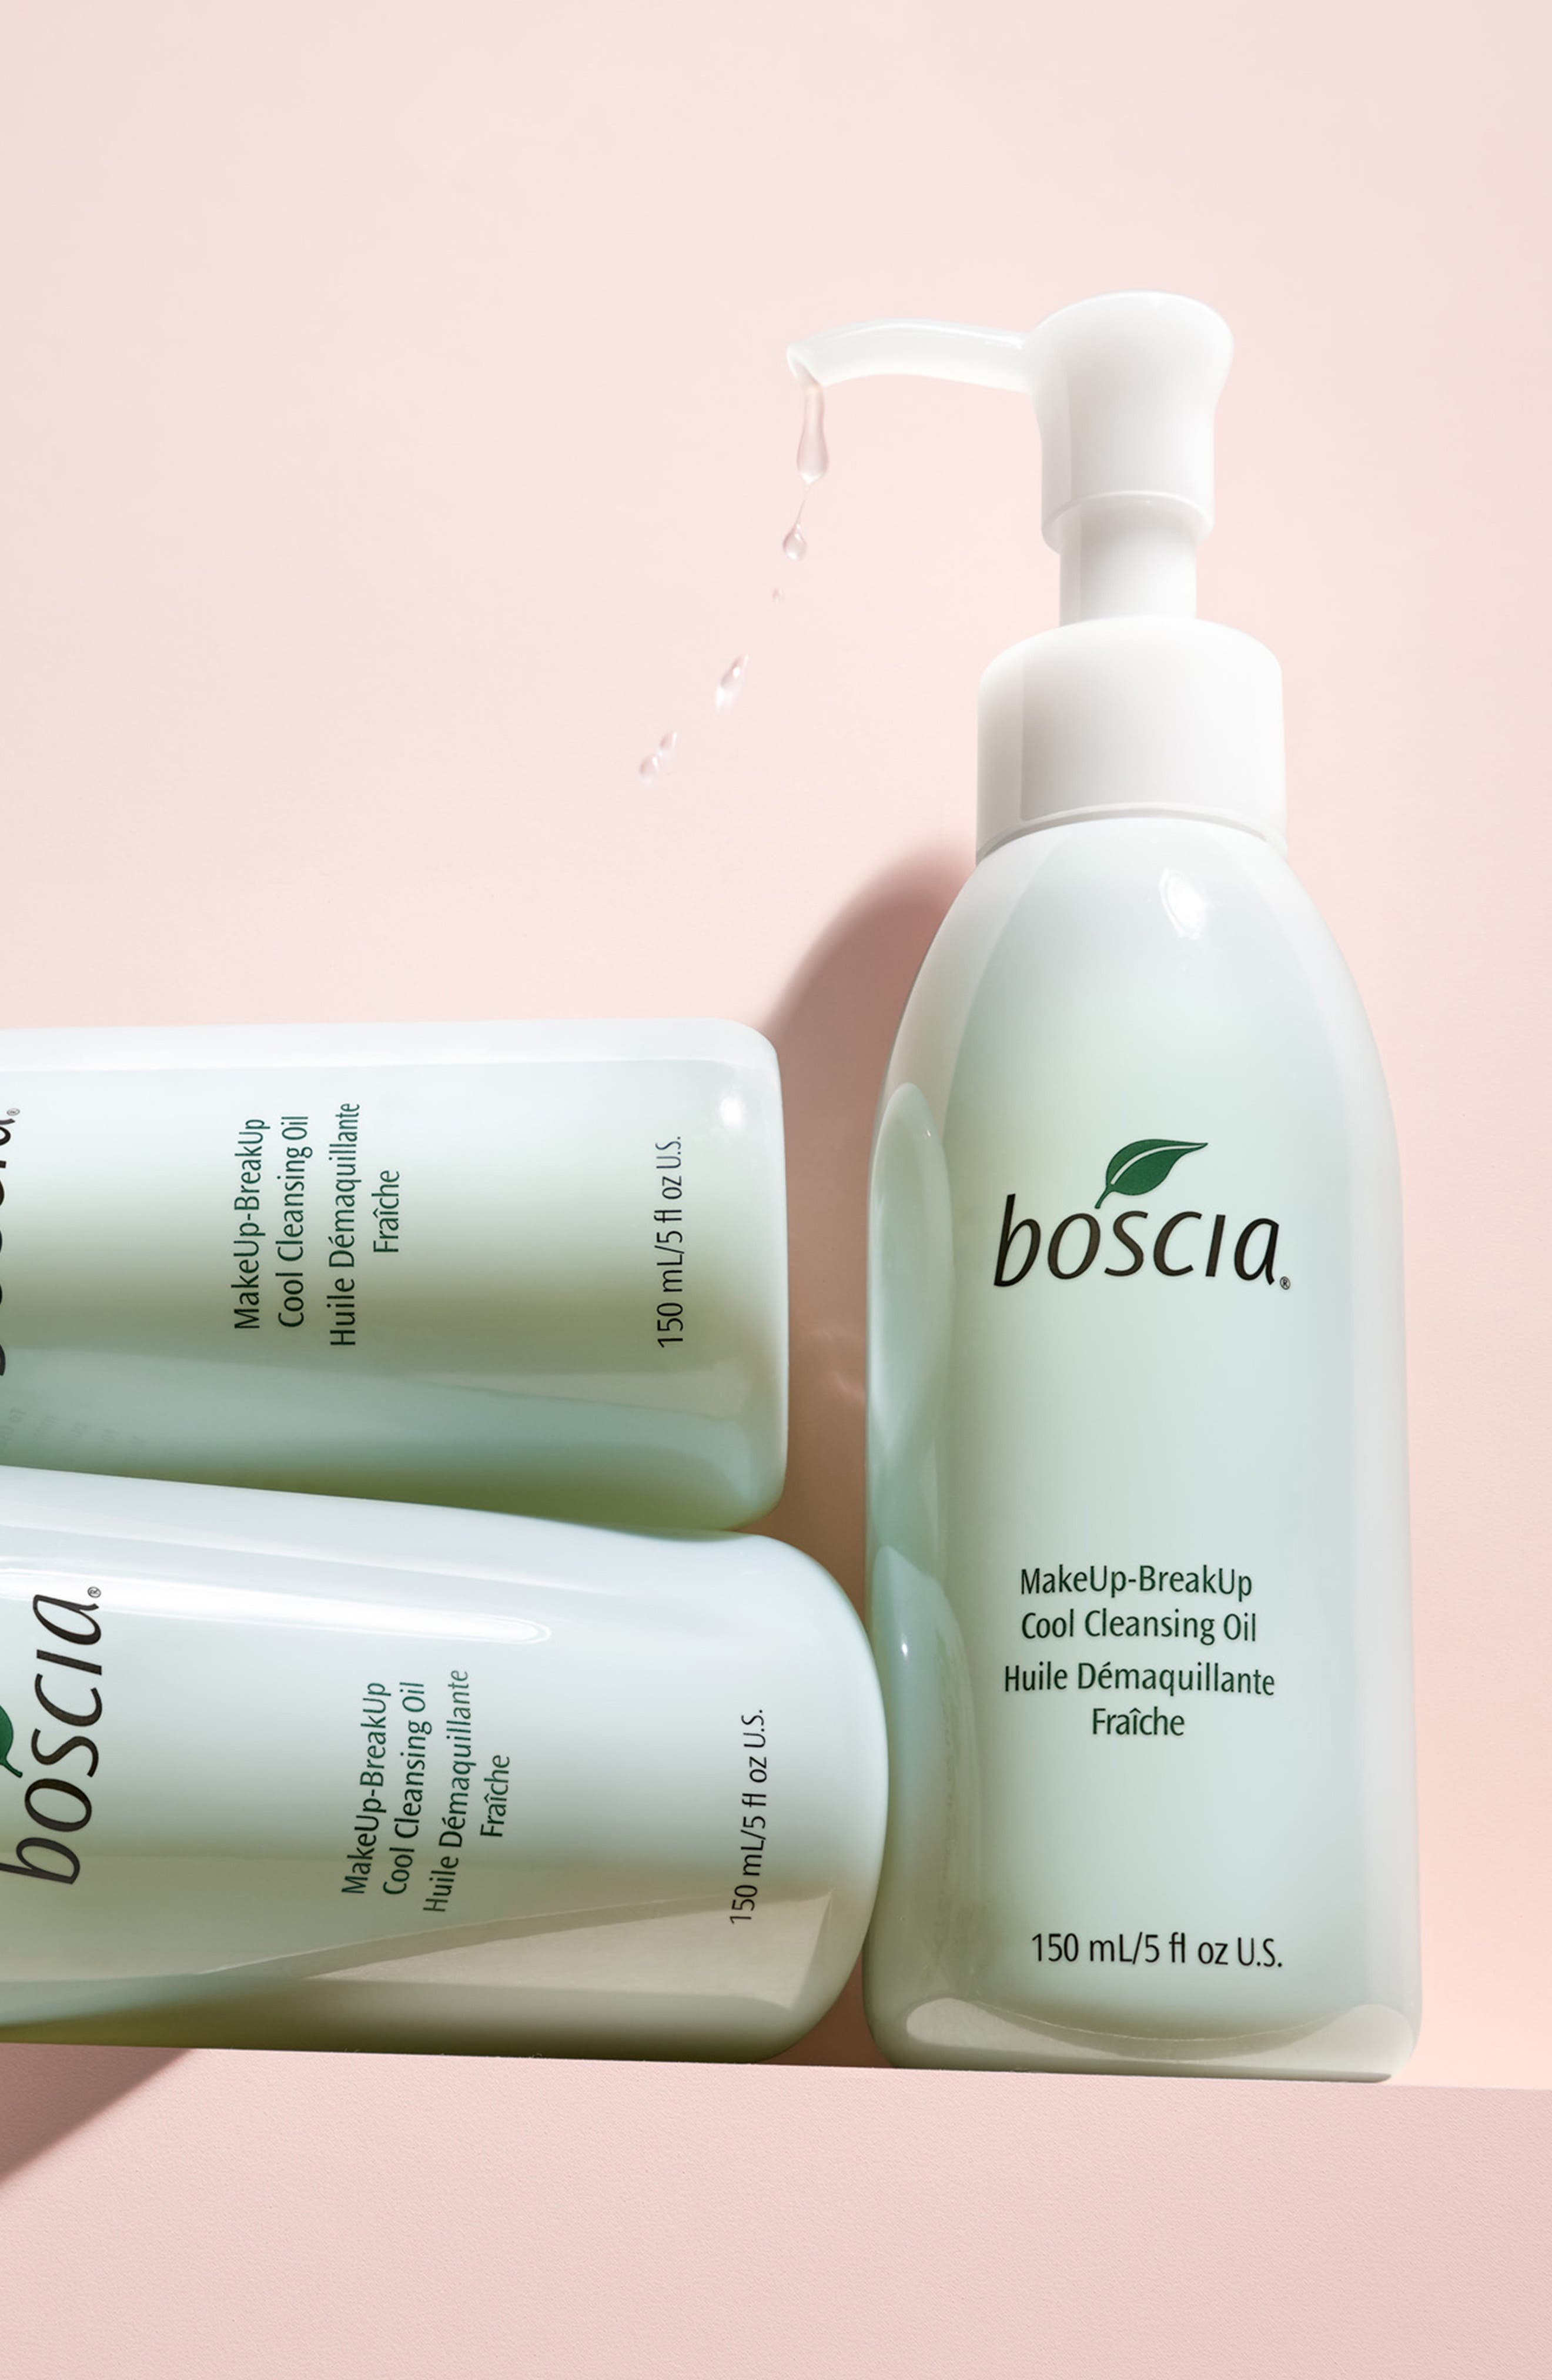 BOSCIA, MakeUp-BreakUp Cool Cleansing Oil, Alternate thumbnail 5, color, NO COLOR